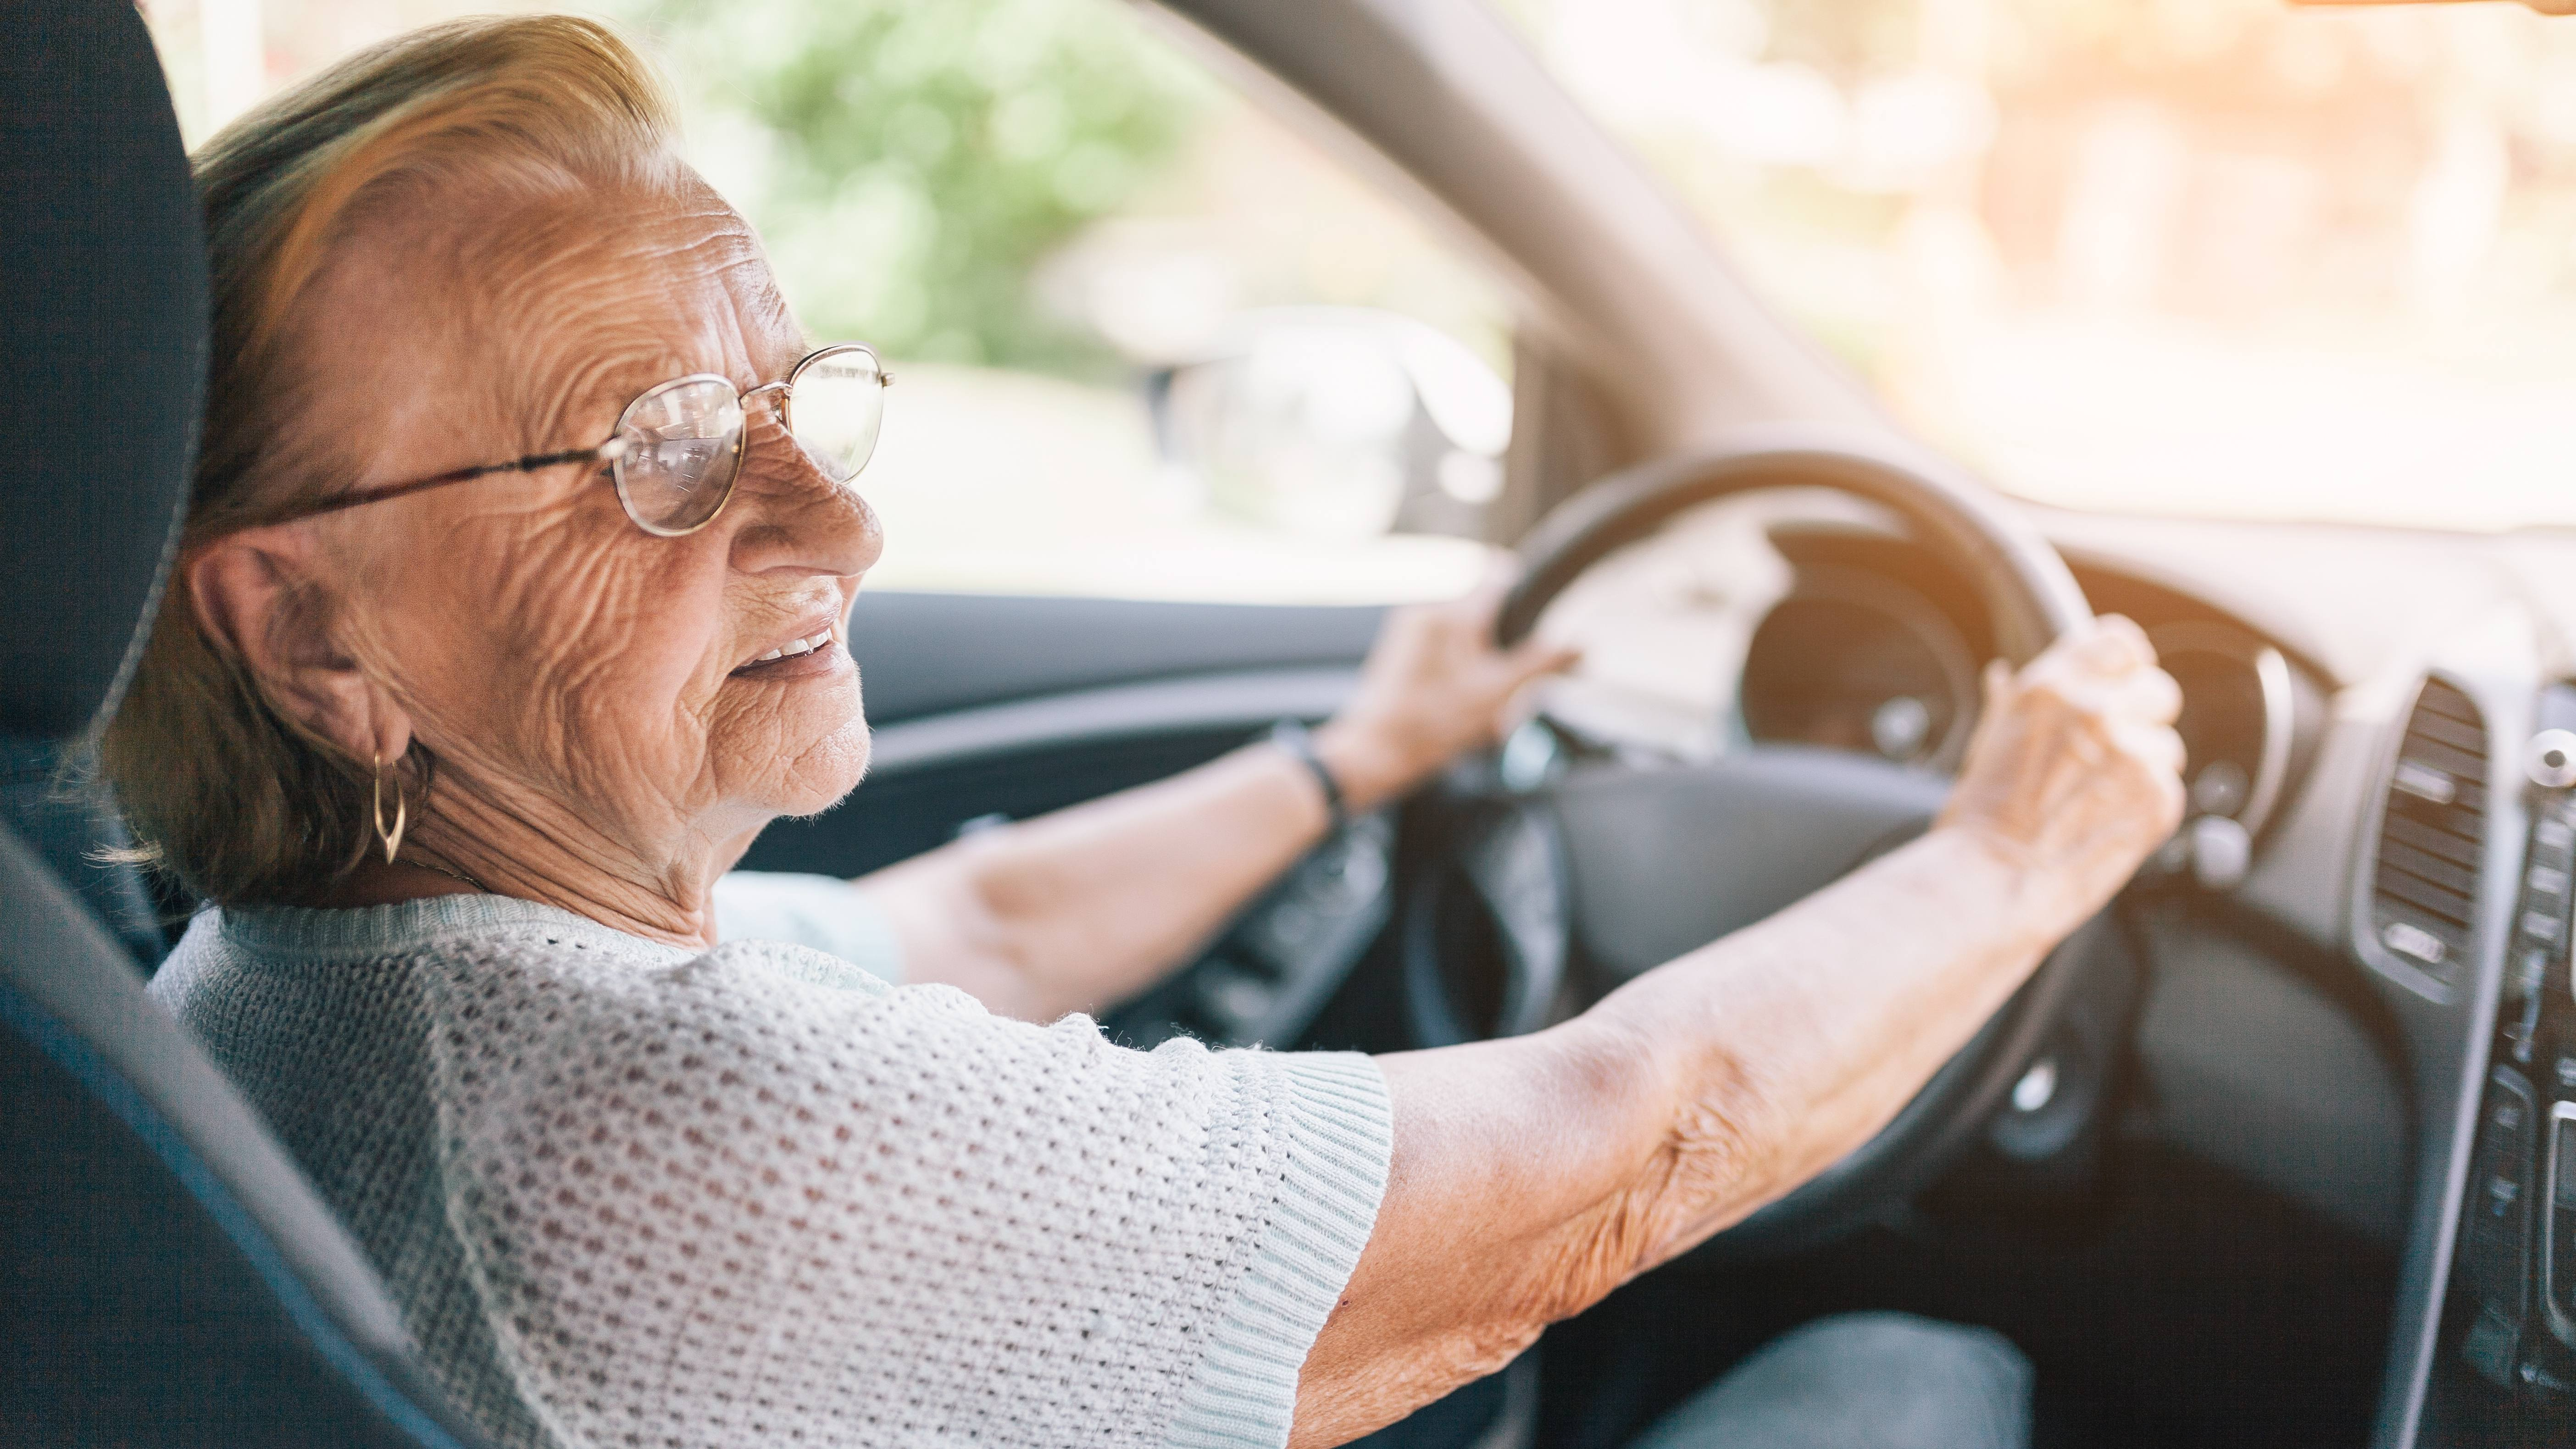 Mayo Clinic Minute: The road to safe driving for older Americans